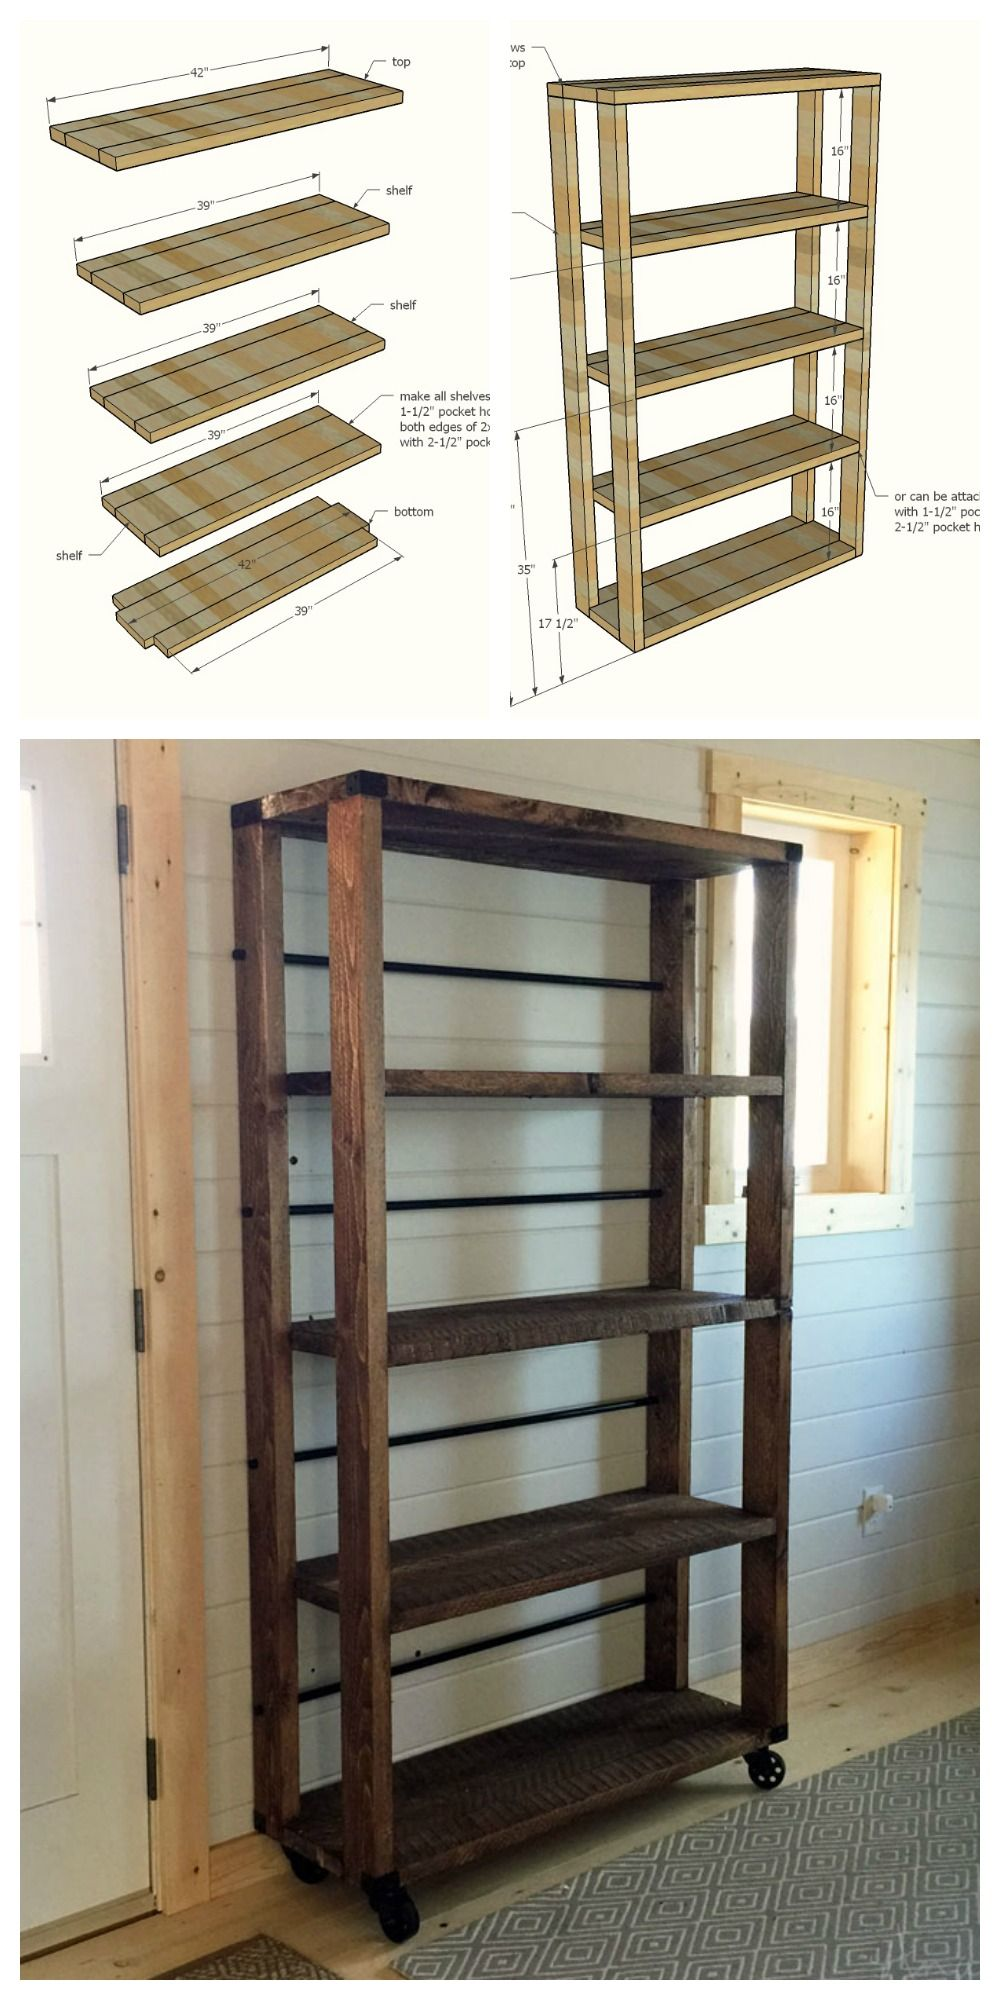 Ana white build a reclaimed wood rolling shelf free for Diy industrial bookshelf